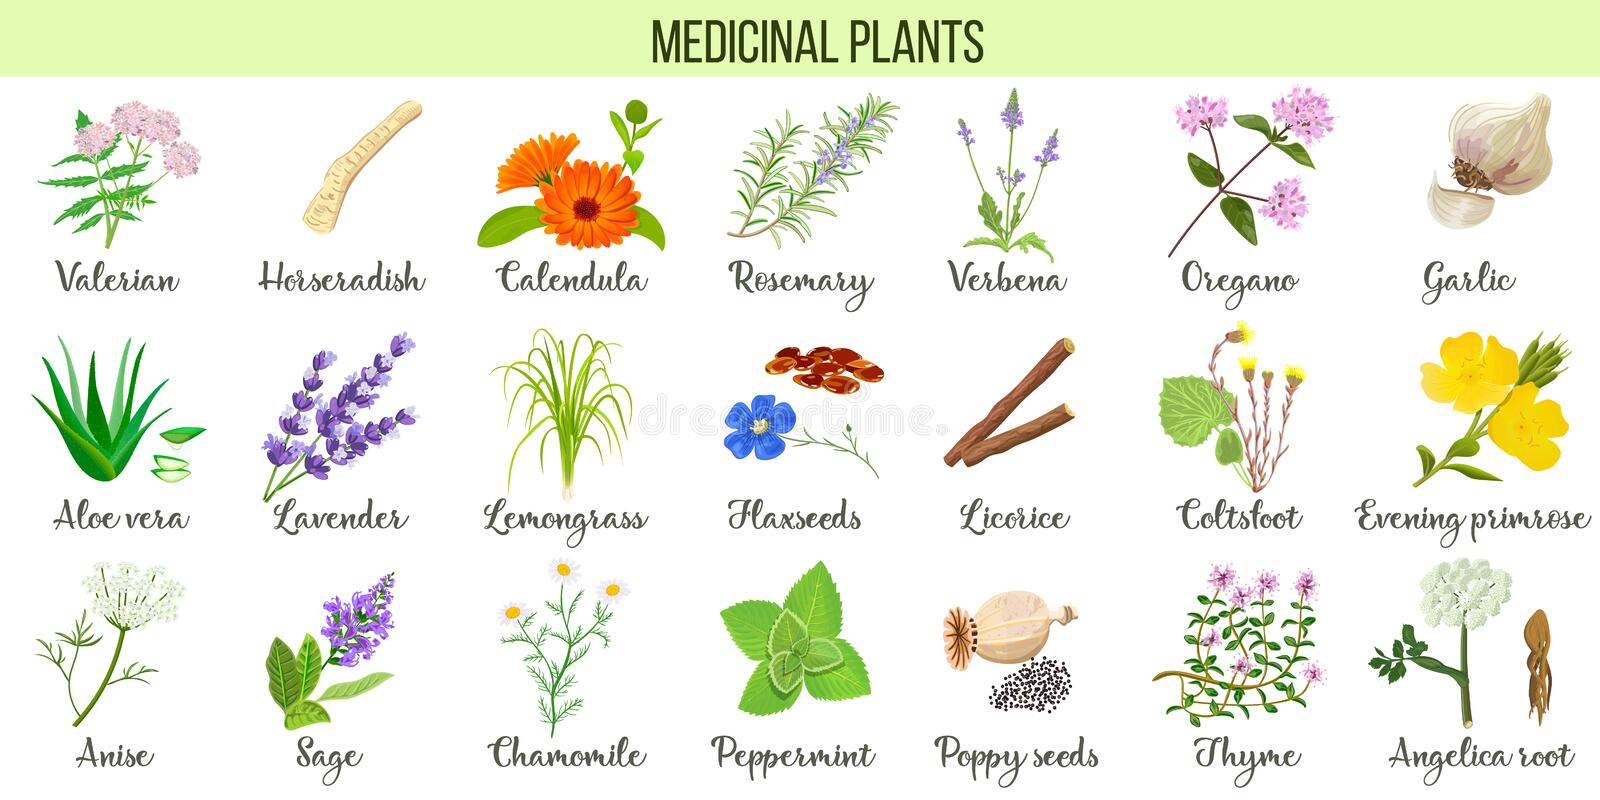 Big set of medicinal plants. Valerian, Aloe vera, lavender, peppermint, angelica root, Chamomile, verbena, anise. Coltsfoot thyme etc For health care royalty free illustration